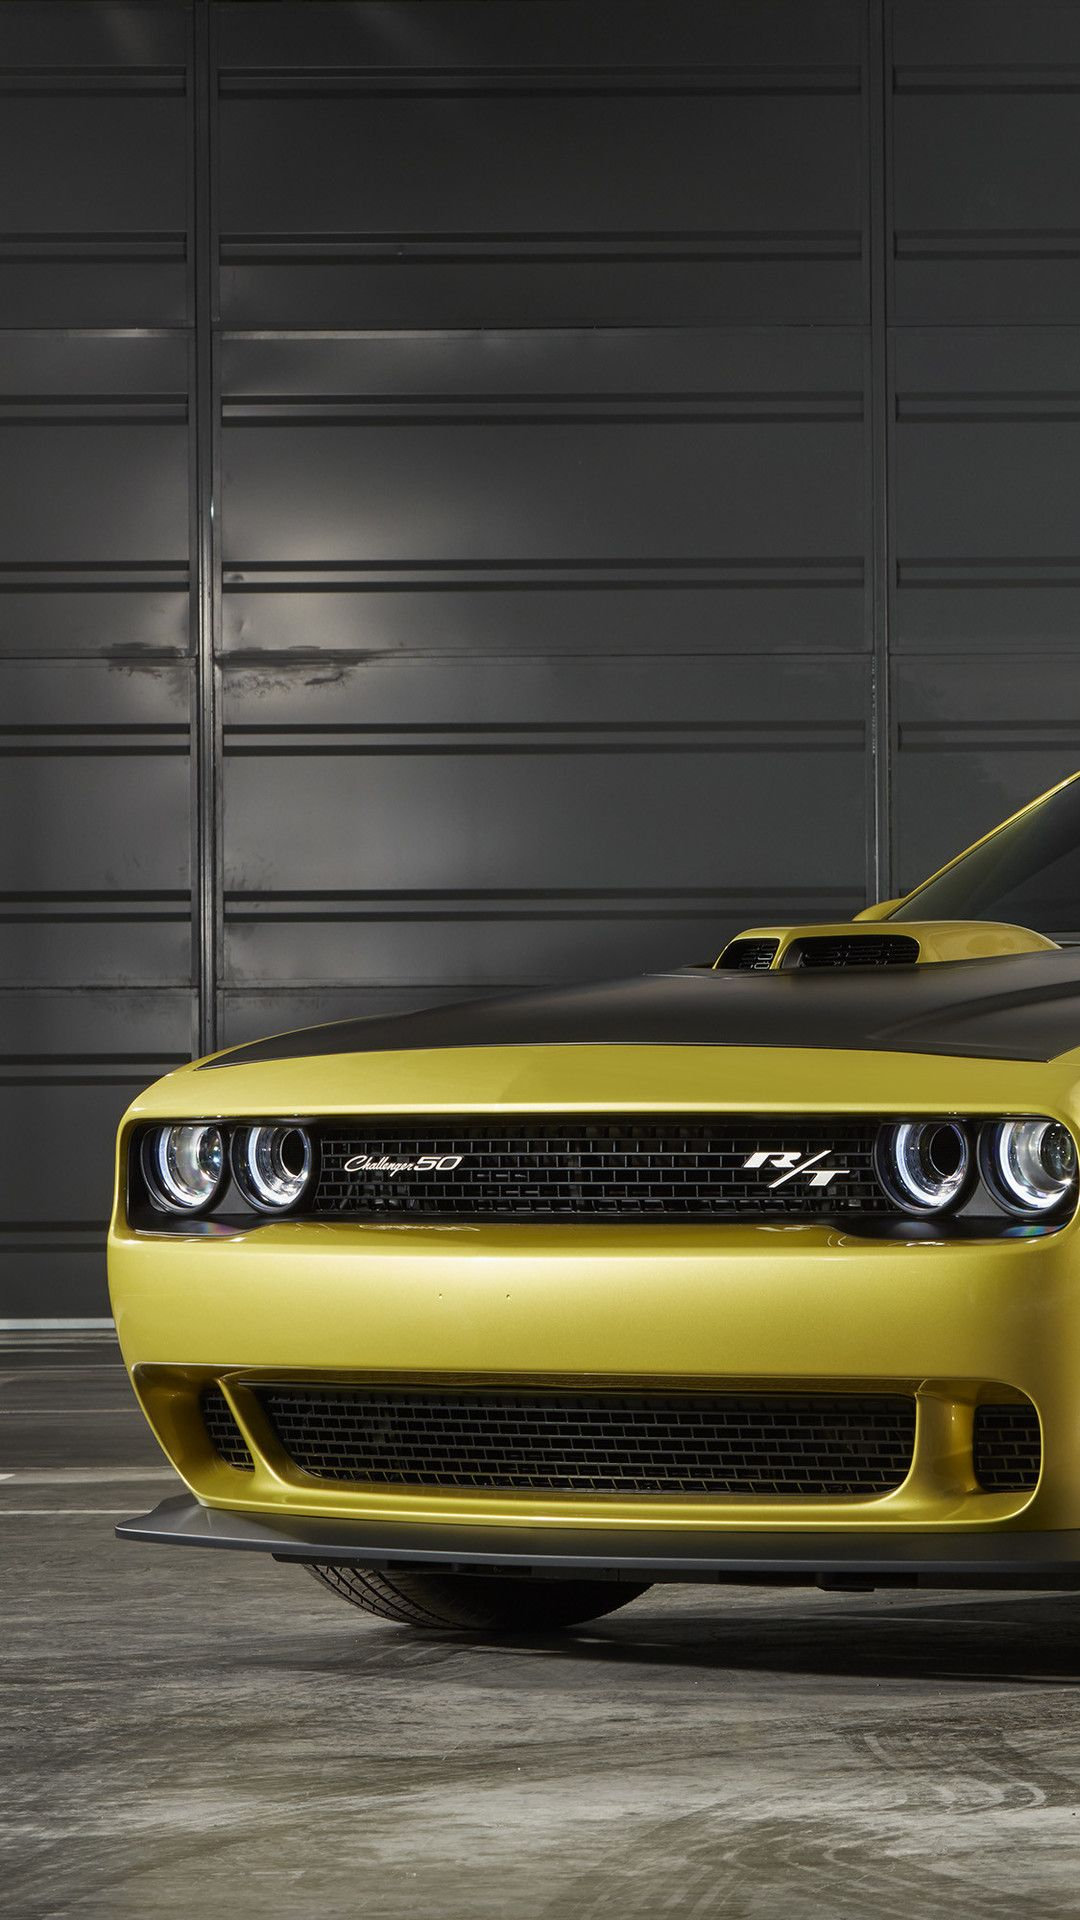 2020 Dodge Challenger Rt Scat Pack Shaker Widebody Mobile Wallpaper Iphone Android Samsung In 2020 Challenger Rt Scat Pack Mobile Wallpaper